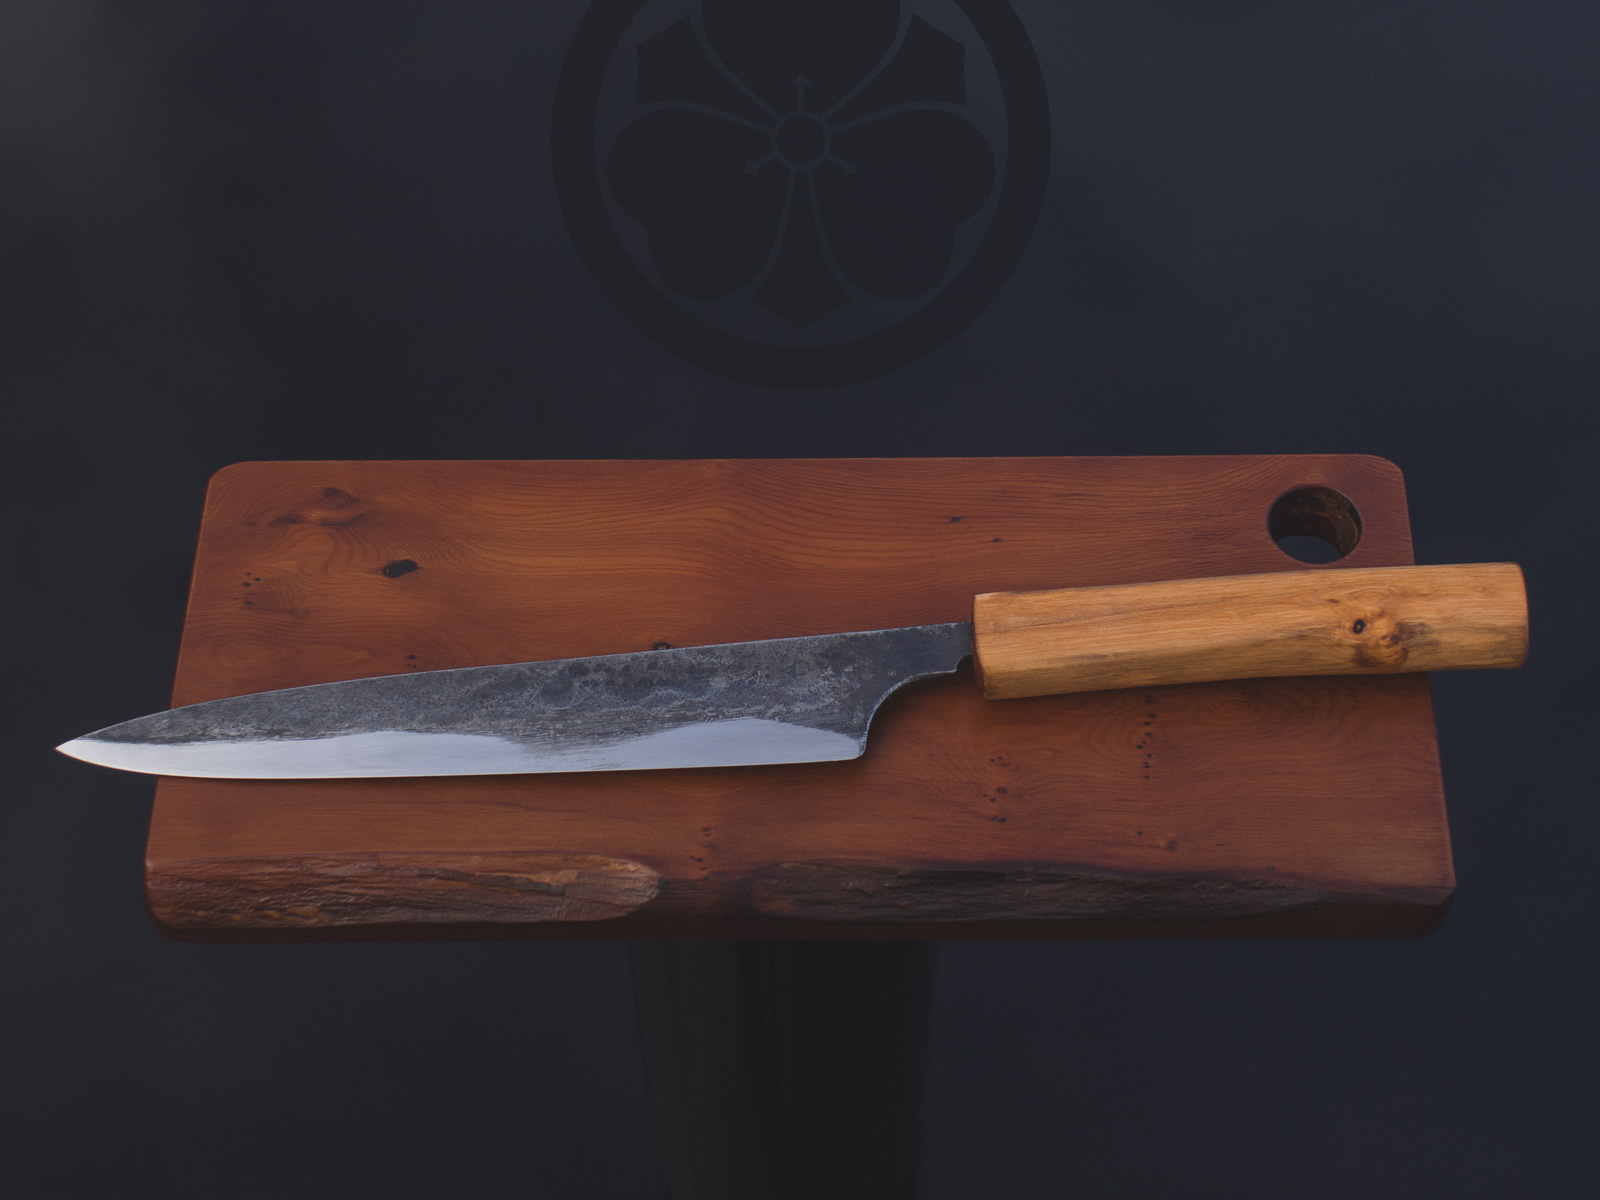 Island Blacksmith: Hand forged knives made from reclaimed steel